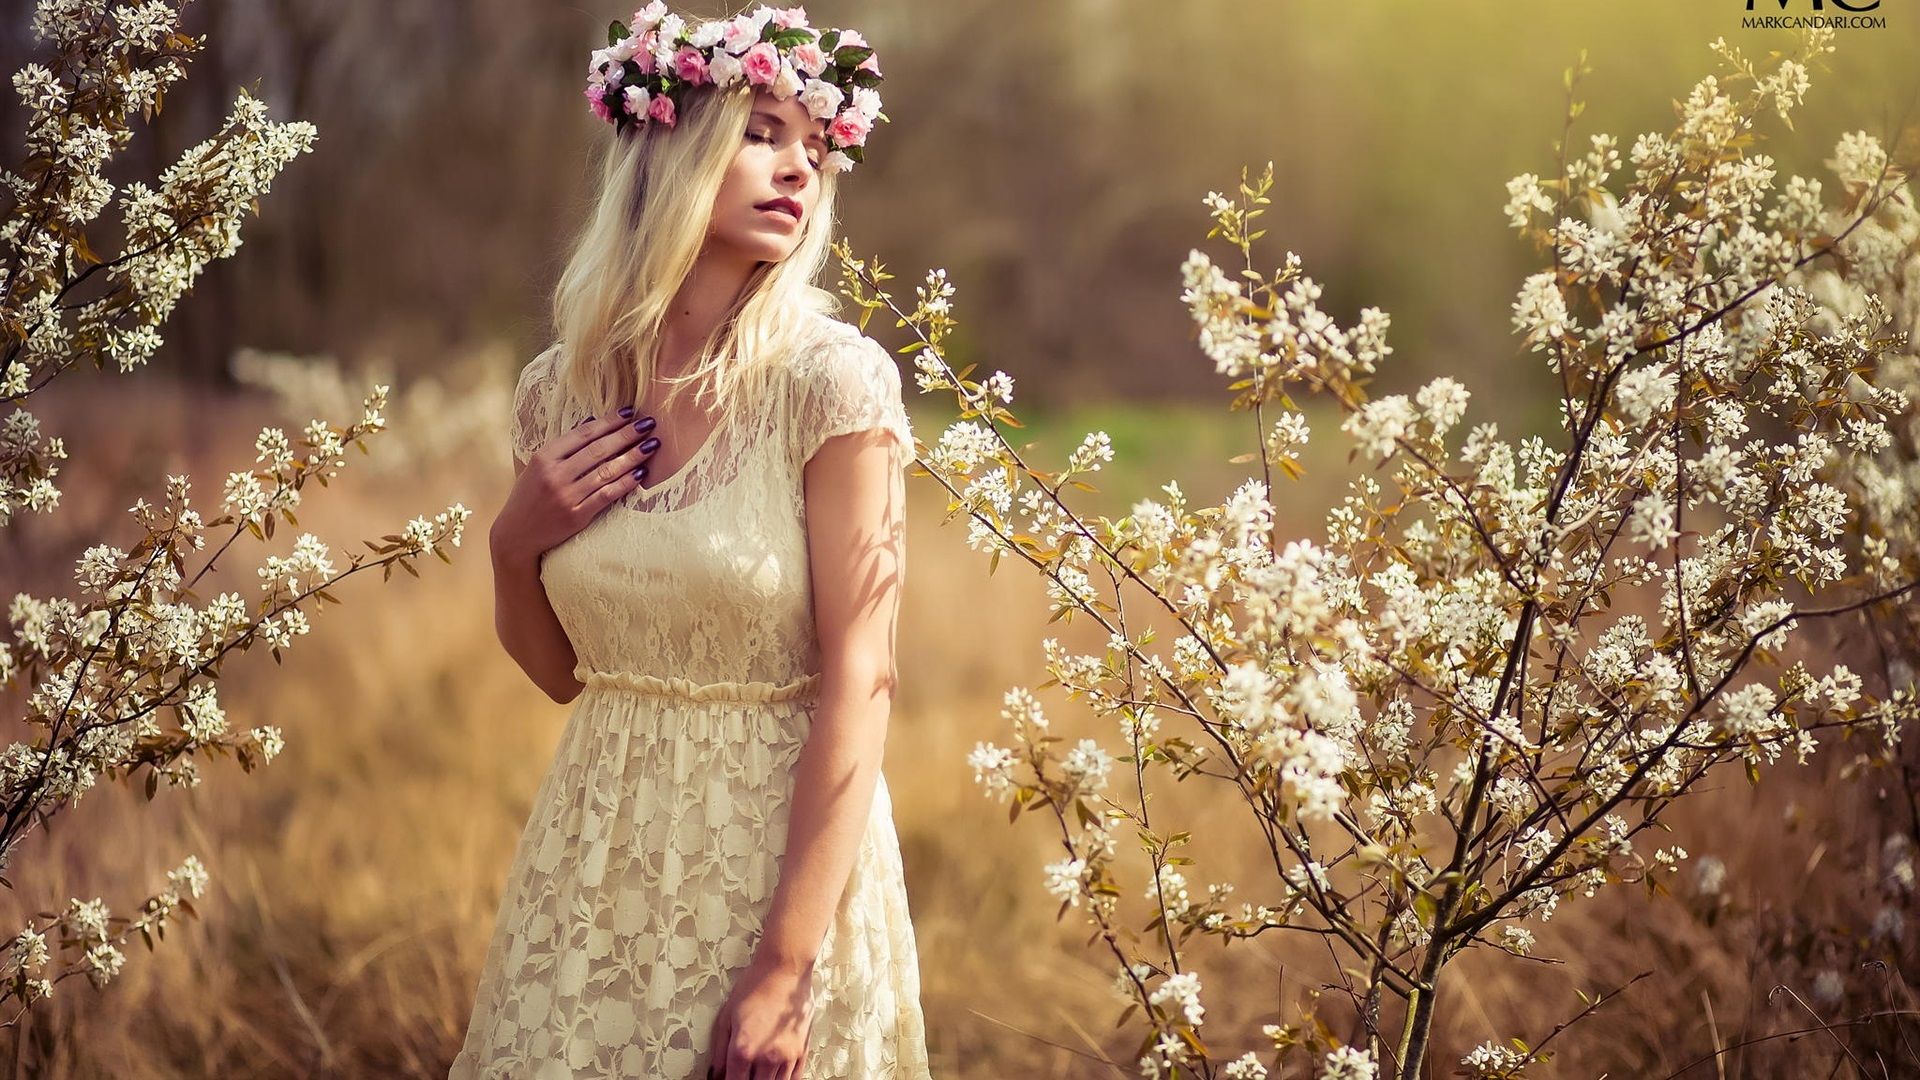 Summer, white dress girl, dreamy, wreath, flowers ...